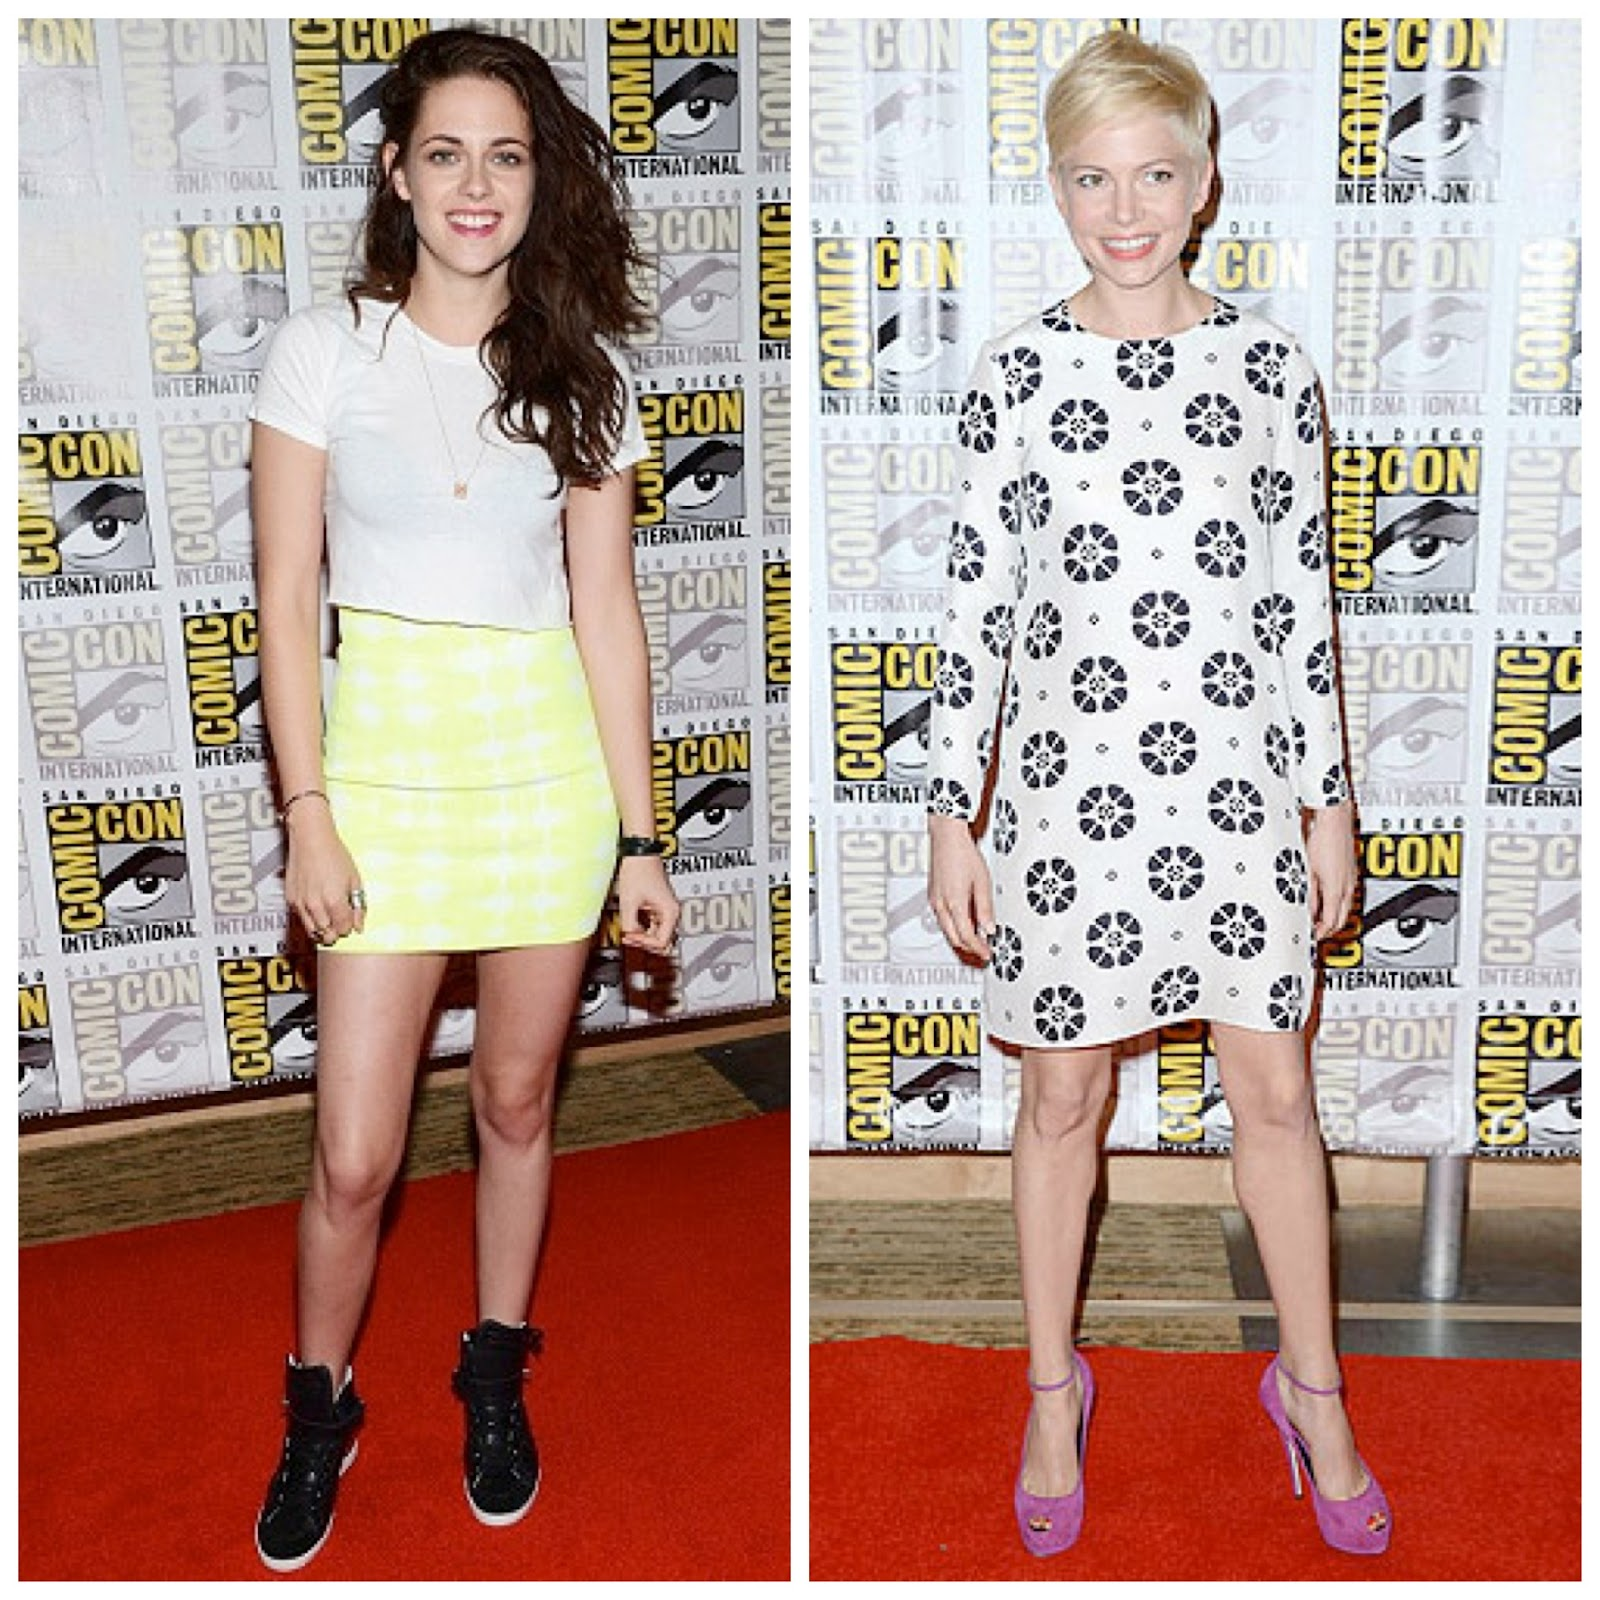 http://2.bp.blogspot.com/-vAD5EtMizRw/UANgYRWTSYI/AAAAAAAABes/pus39yF-Wa4/s1600/Kristen-Stewart-michelle-willians-comic-con-2012.JPG